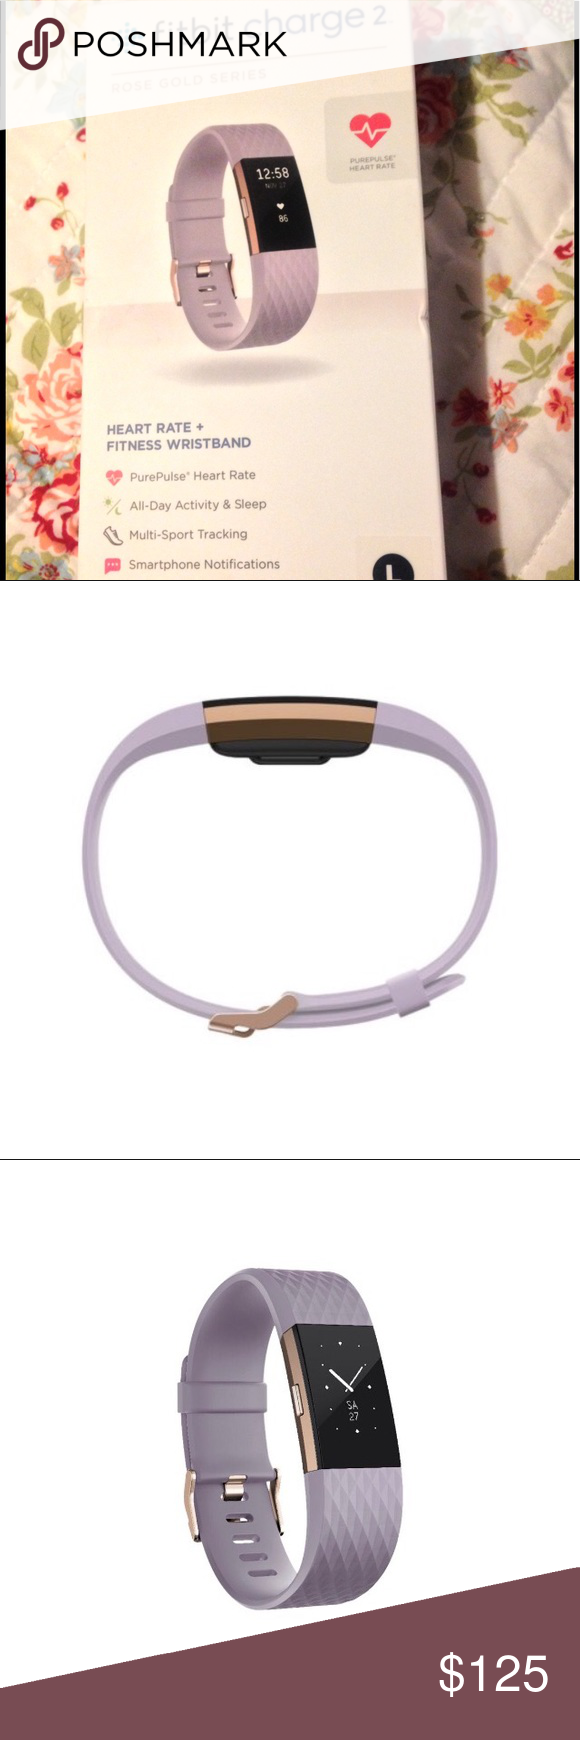 New fitbit charge rose gold series fitbit charge fitbit and gold